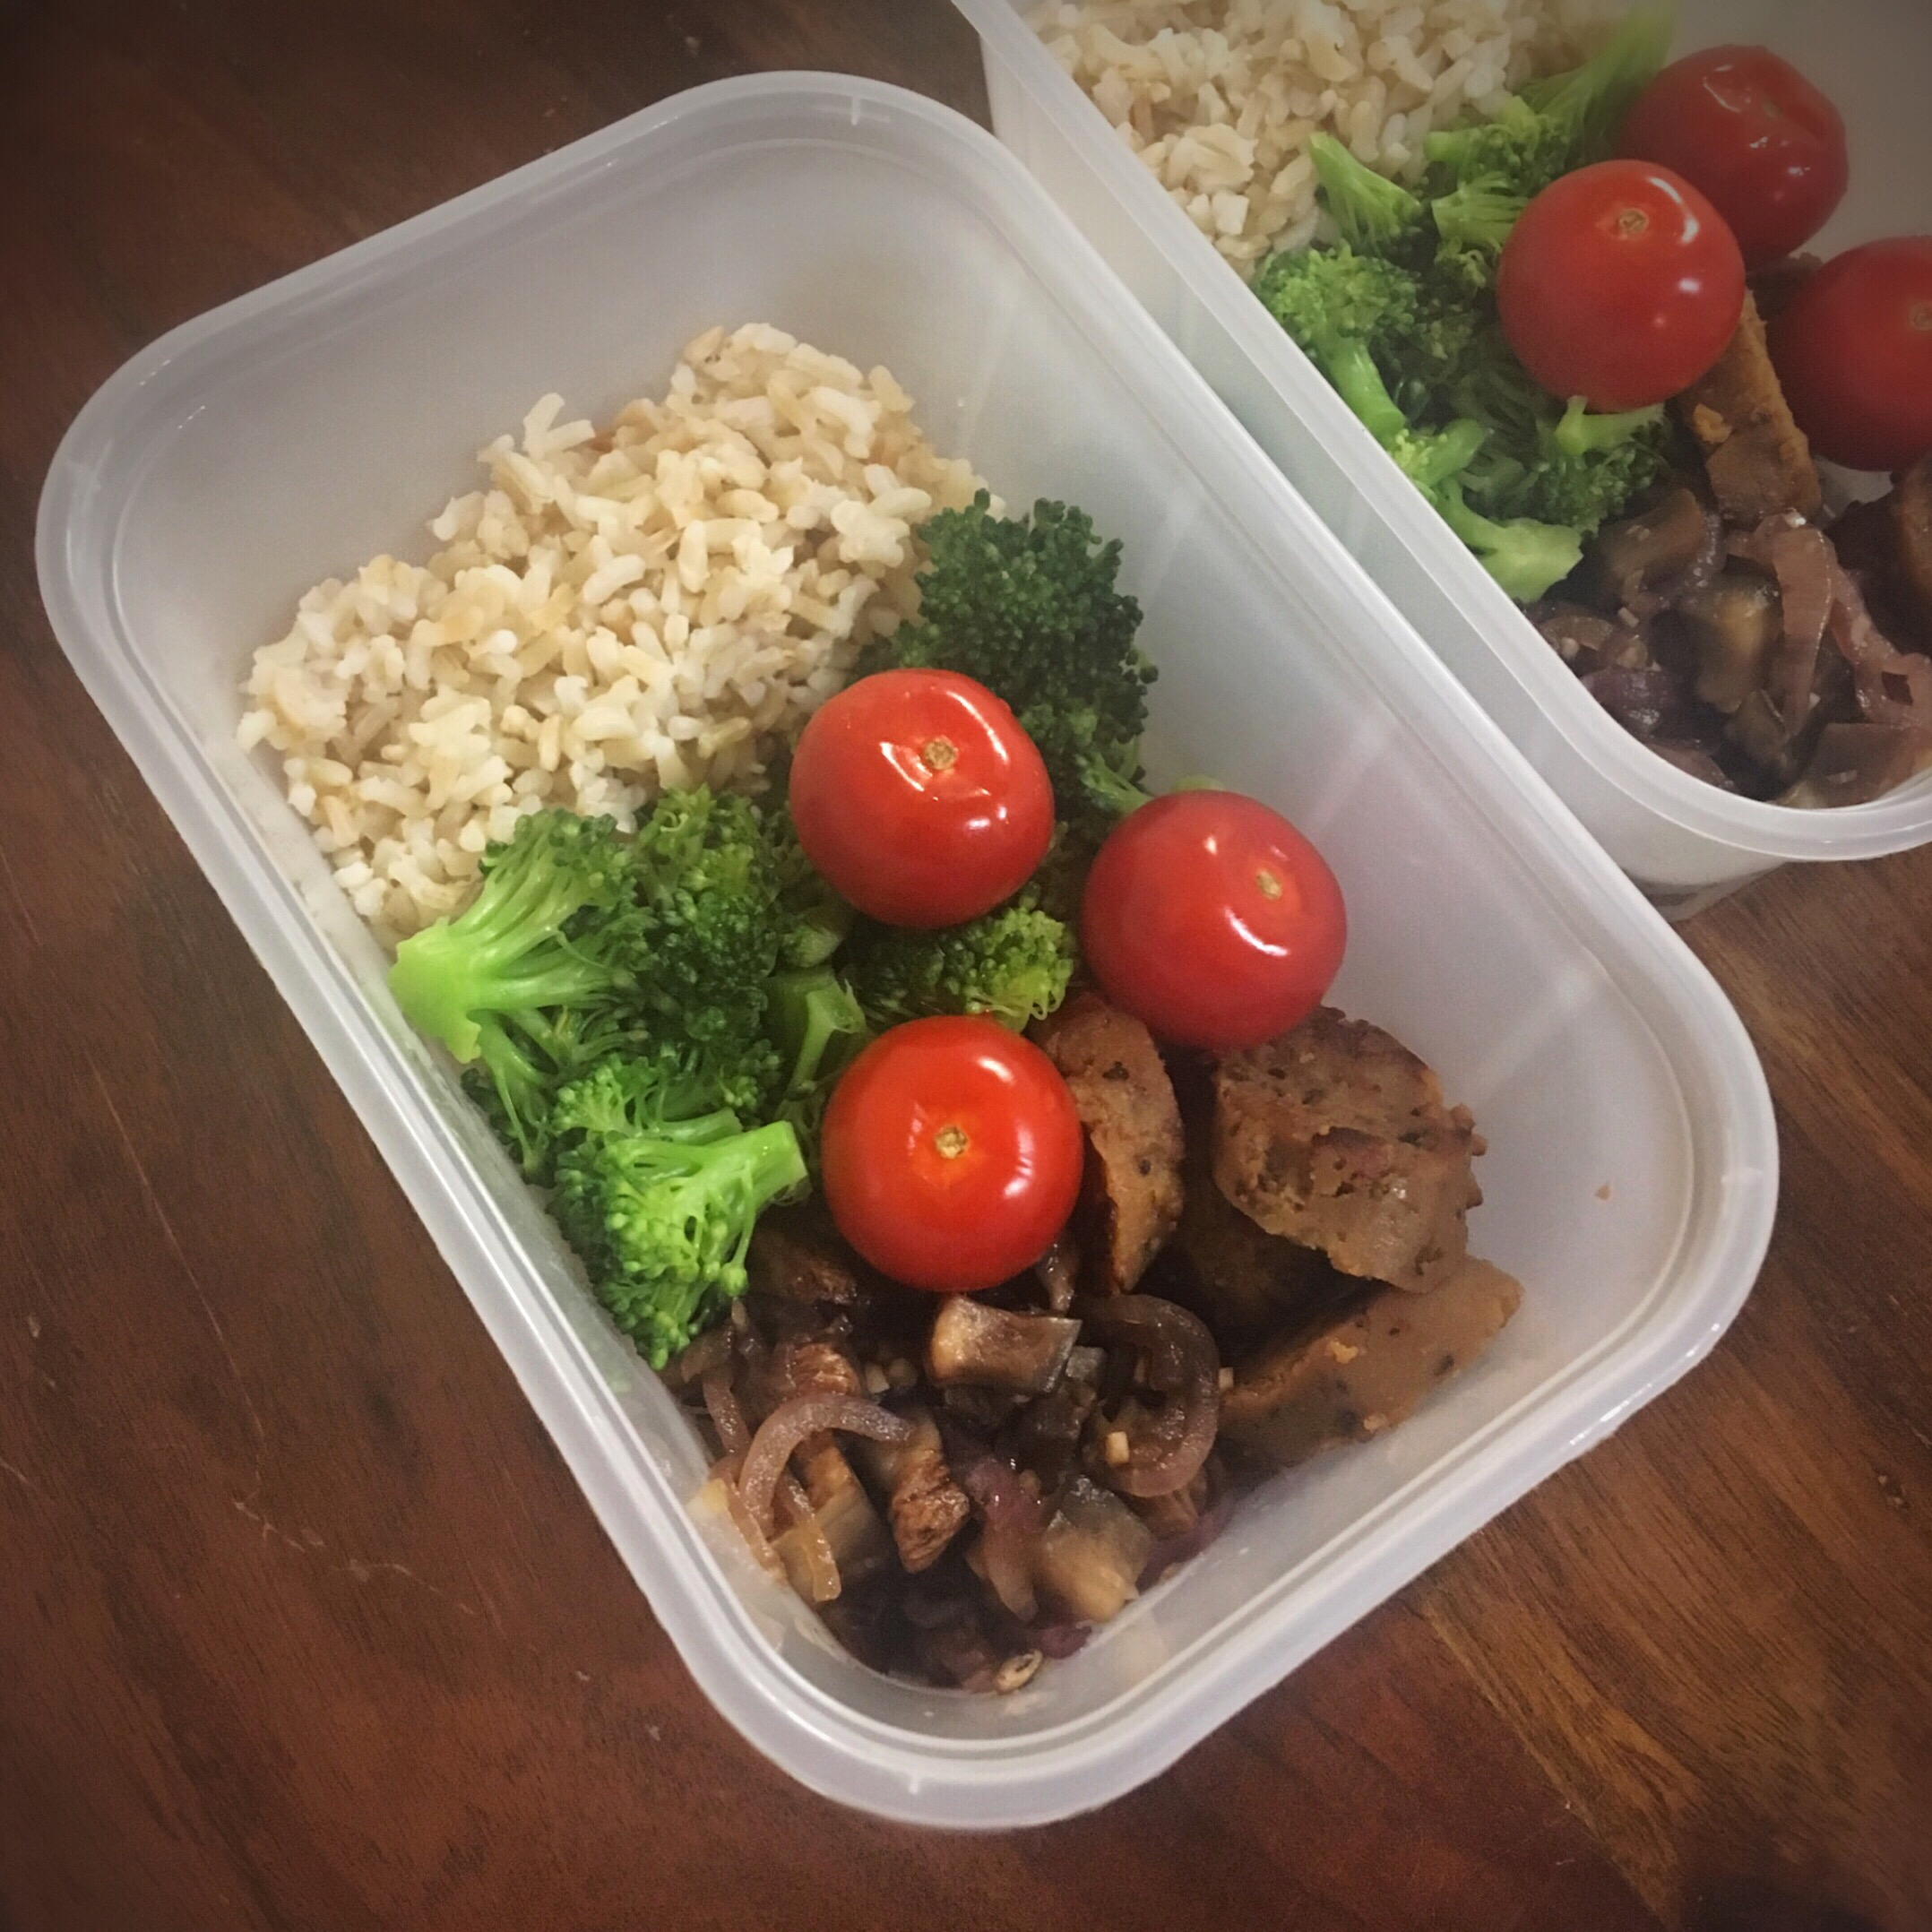 Free Meal Prep! Vegan Sausage, Mushrooms, Onions, Broccoli, Tomatoes, and Brown Rice (to go).